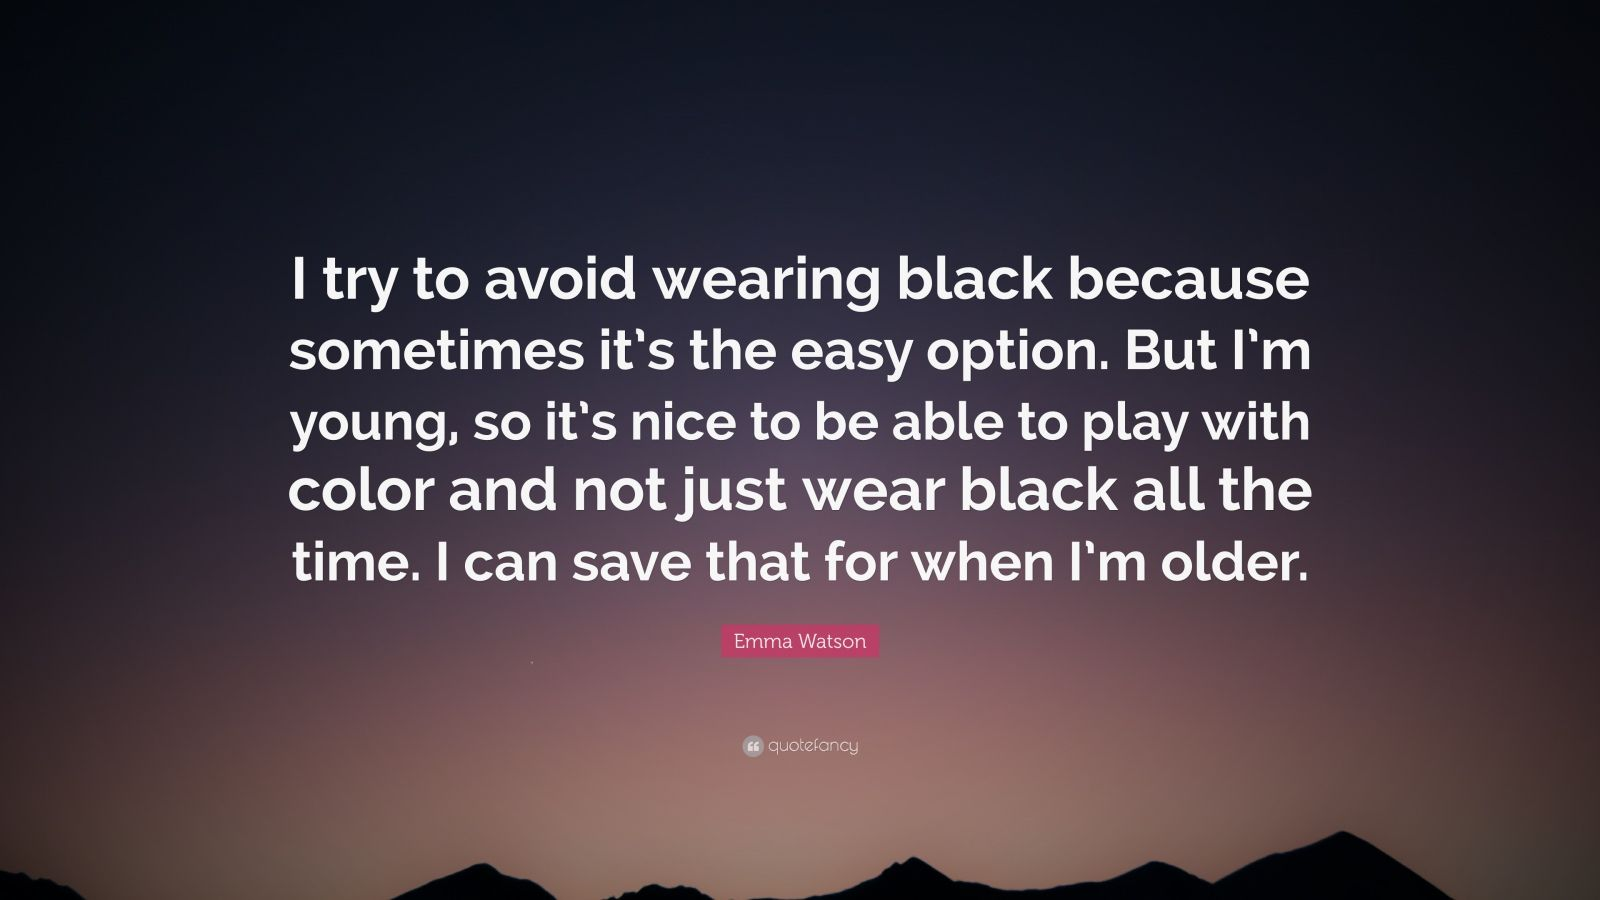 """Emma Watson Quote: """"I try to avoid wearing black because sometimes it's the easy option. But I'm young, so it's nice to be able to play with color and not just wear black all the time. I can save that for when I'm older."""""""